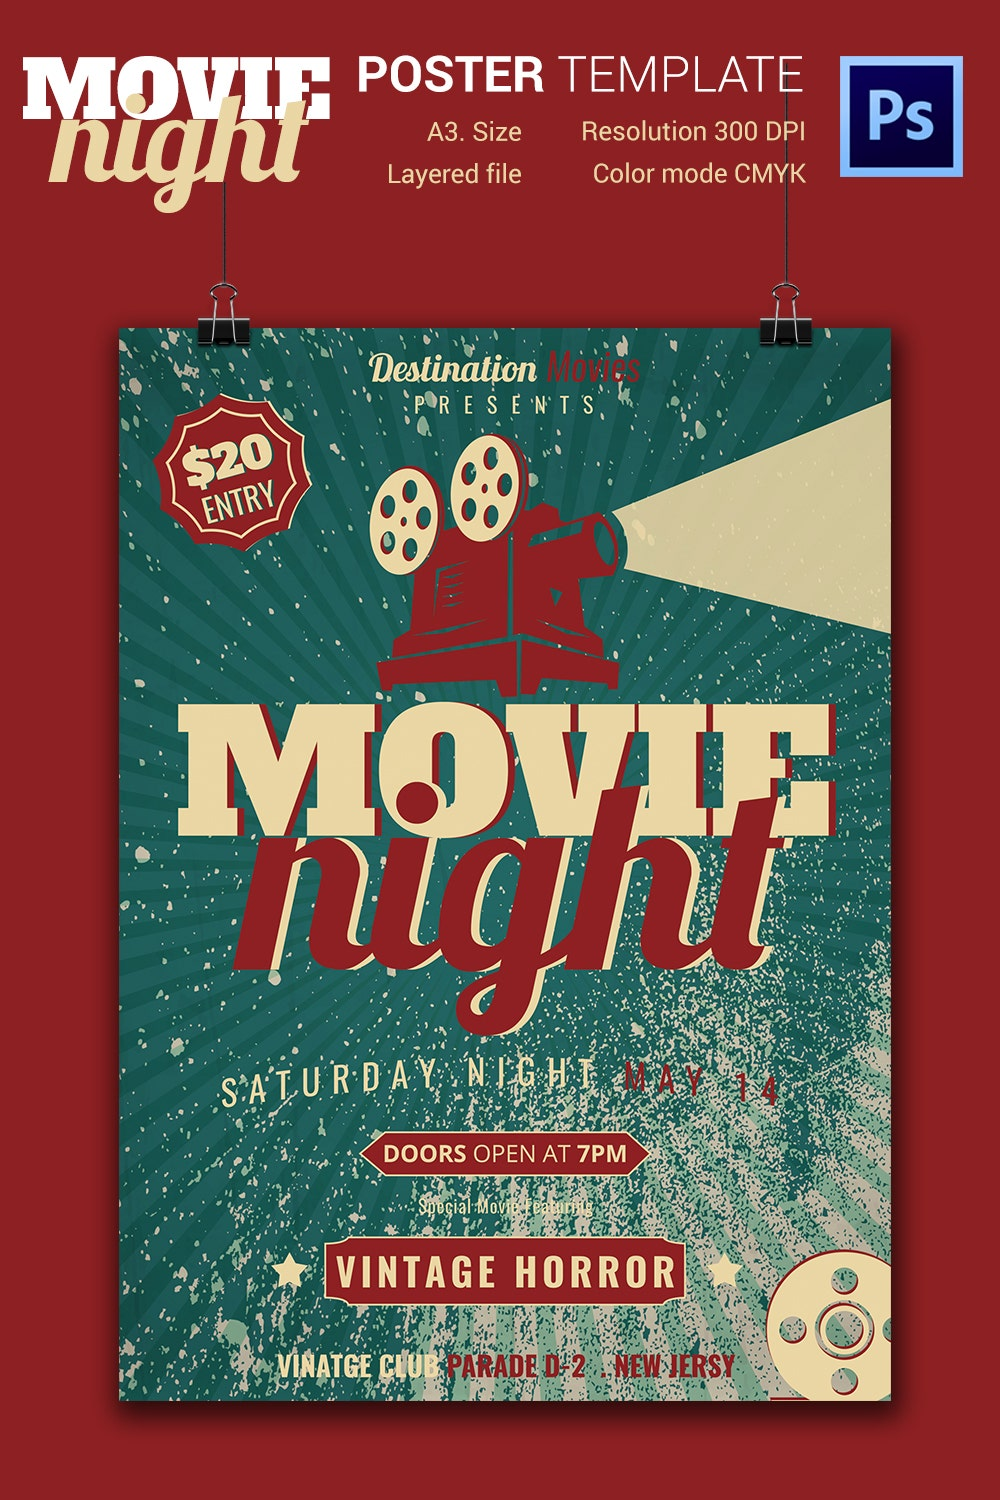 movie night flyer jpg psd format movie night flyer template